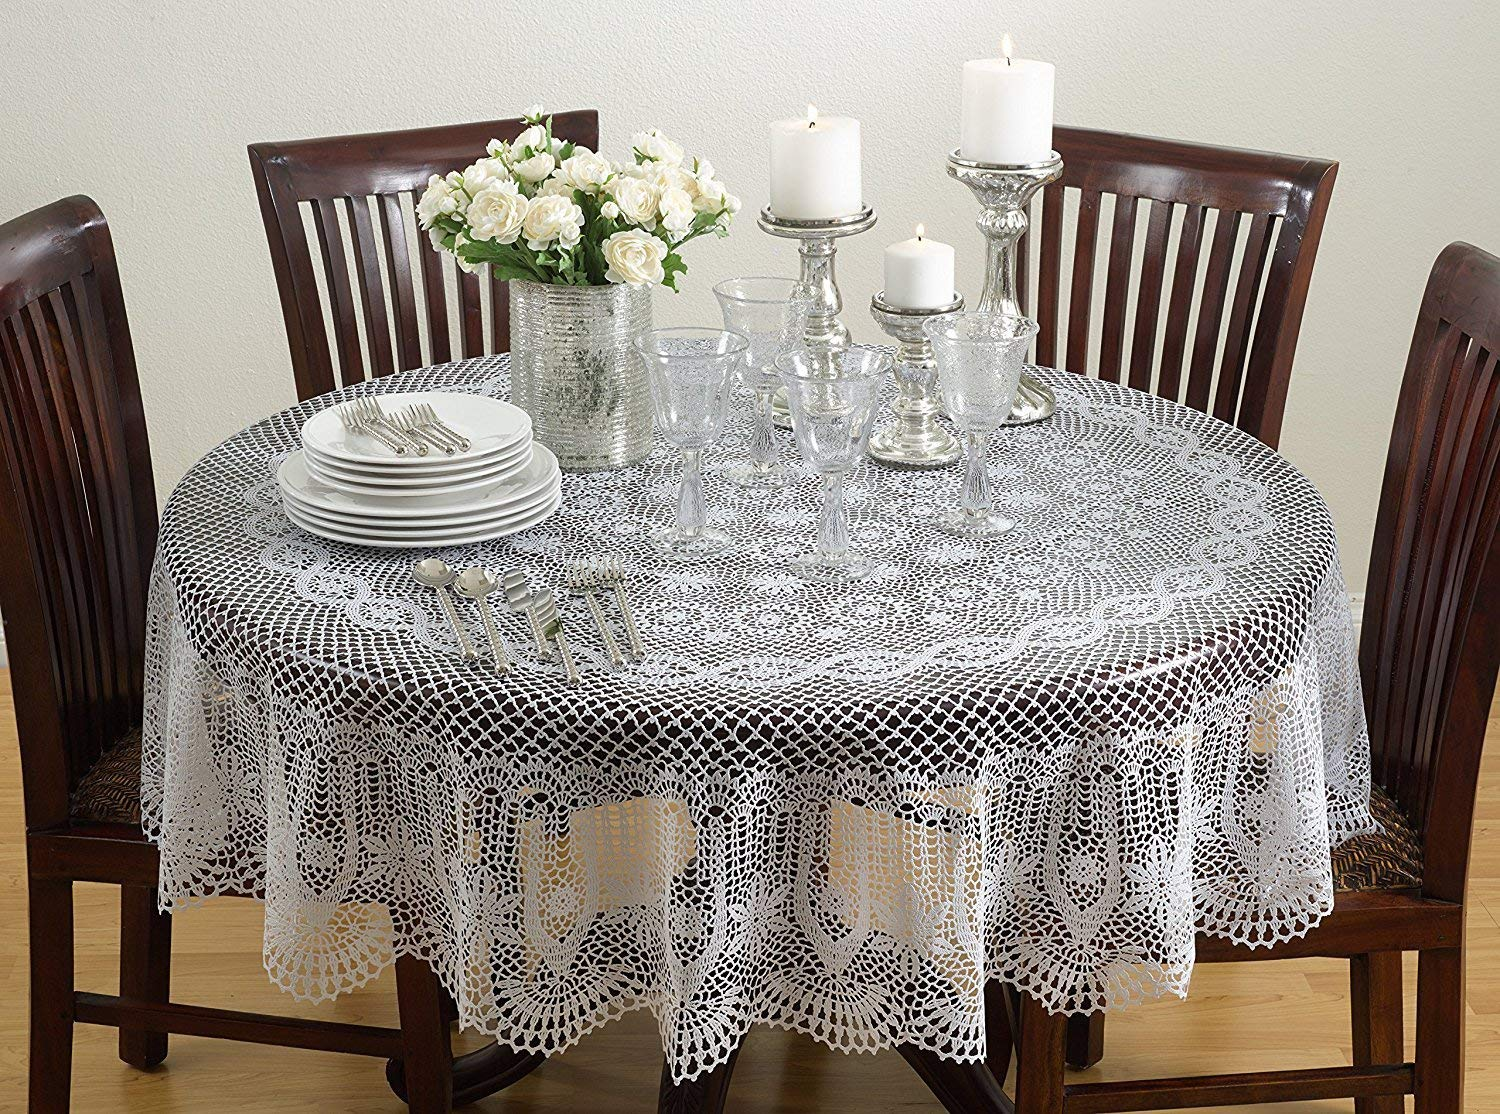 Classic Crochet Vinyl Tablecloth, 2 Colors, 72-inch Round (White)